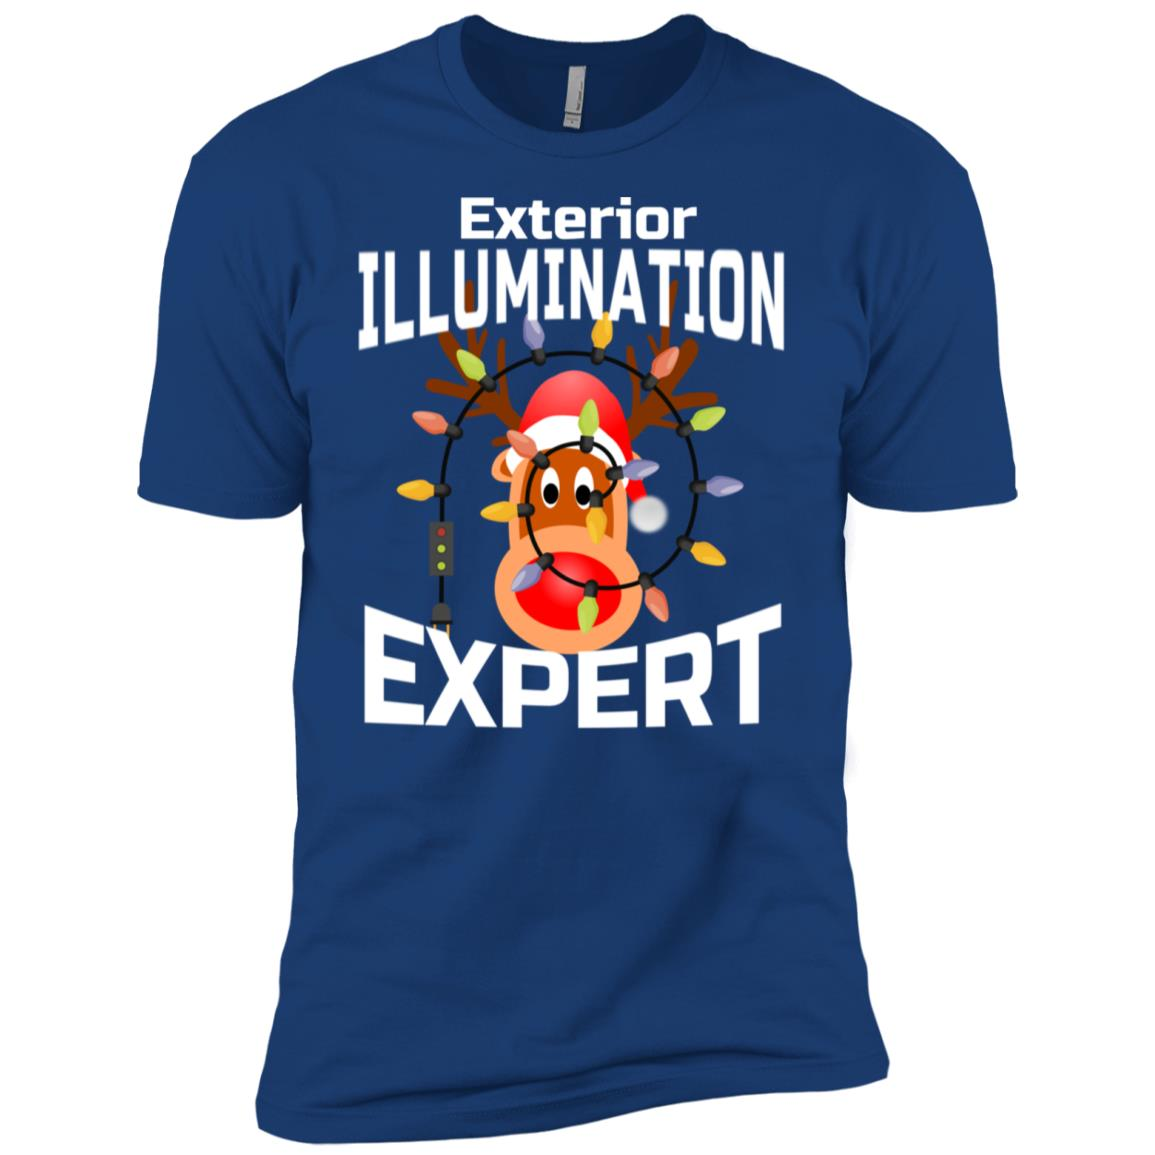 Exterior Illumination Expert for Christmas Lights Experts Men Short Sleeve T-Shirt